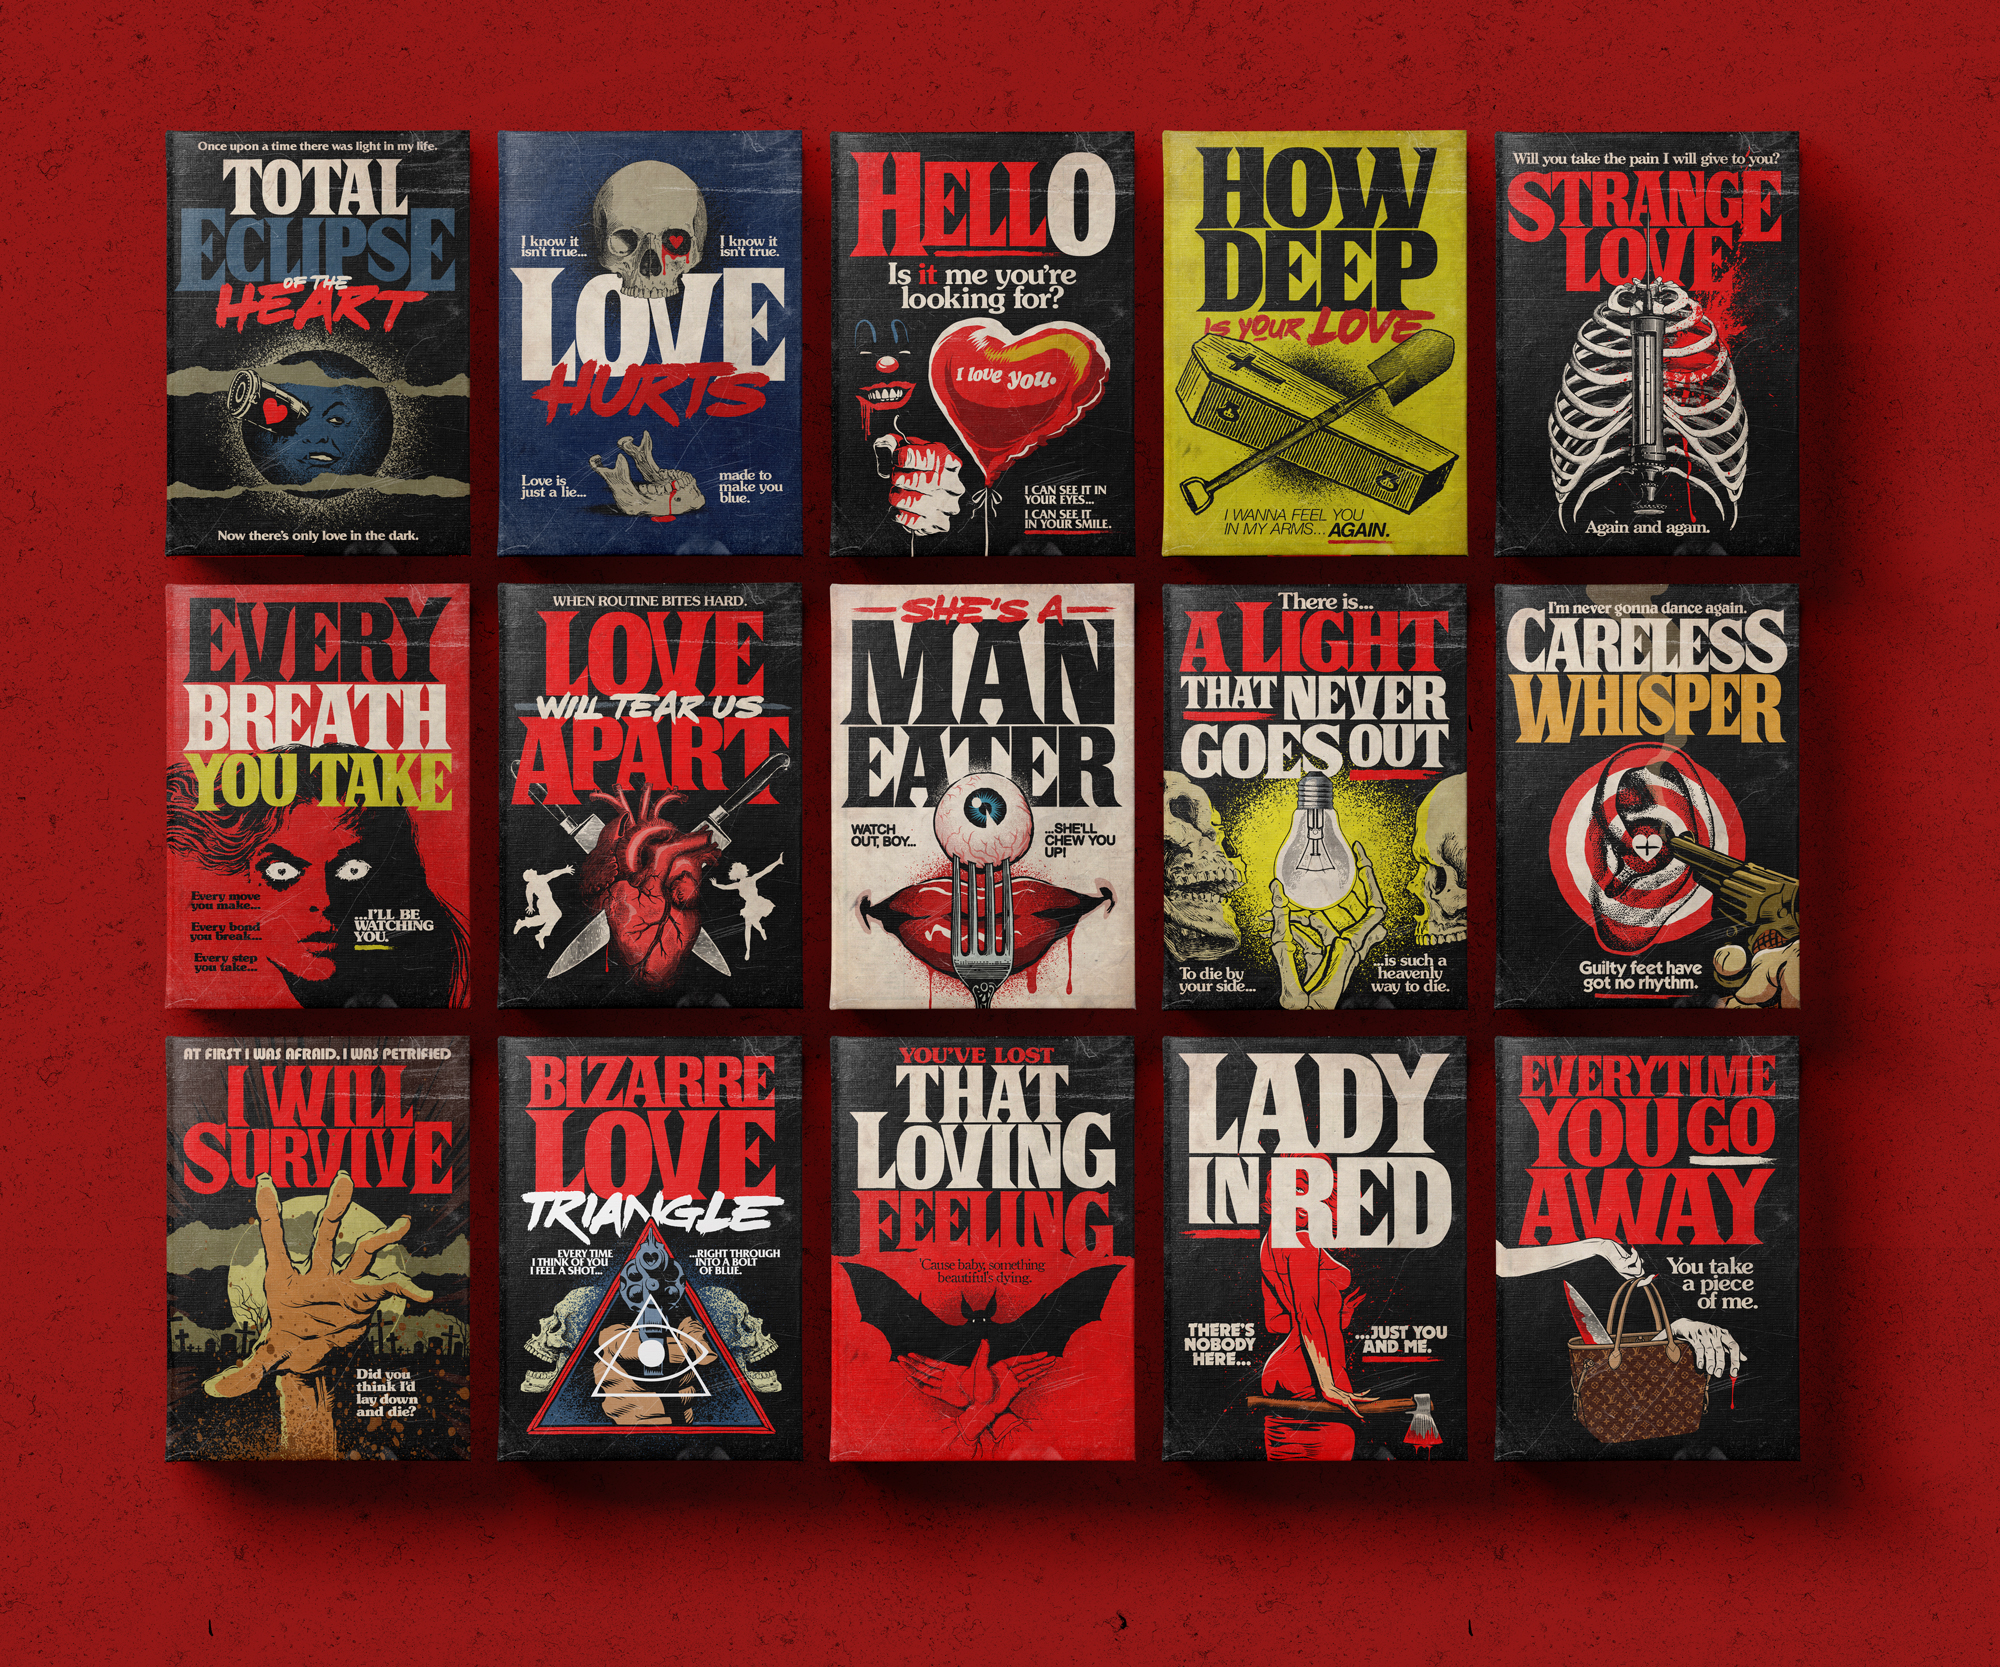 Graphic designer Butcher Billy turned famous love songs into Stephen King books and movies